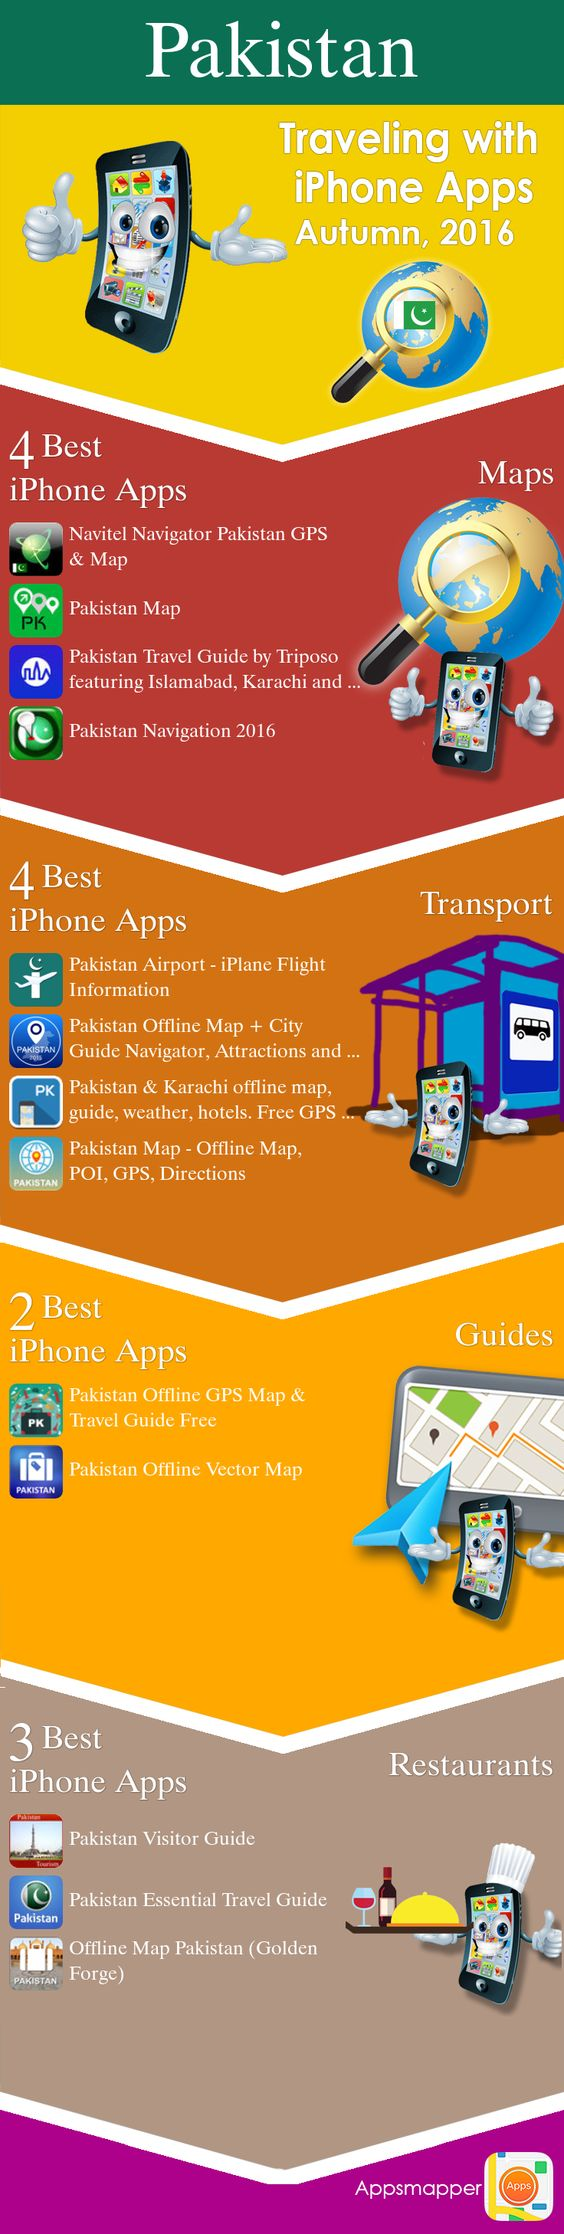 Pakistan iPhone apps: Travel Guides, Maps, Transportation, Biking, Museums, Parking, Sport and apps for Students.